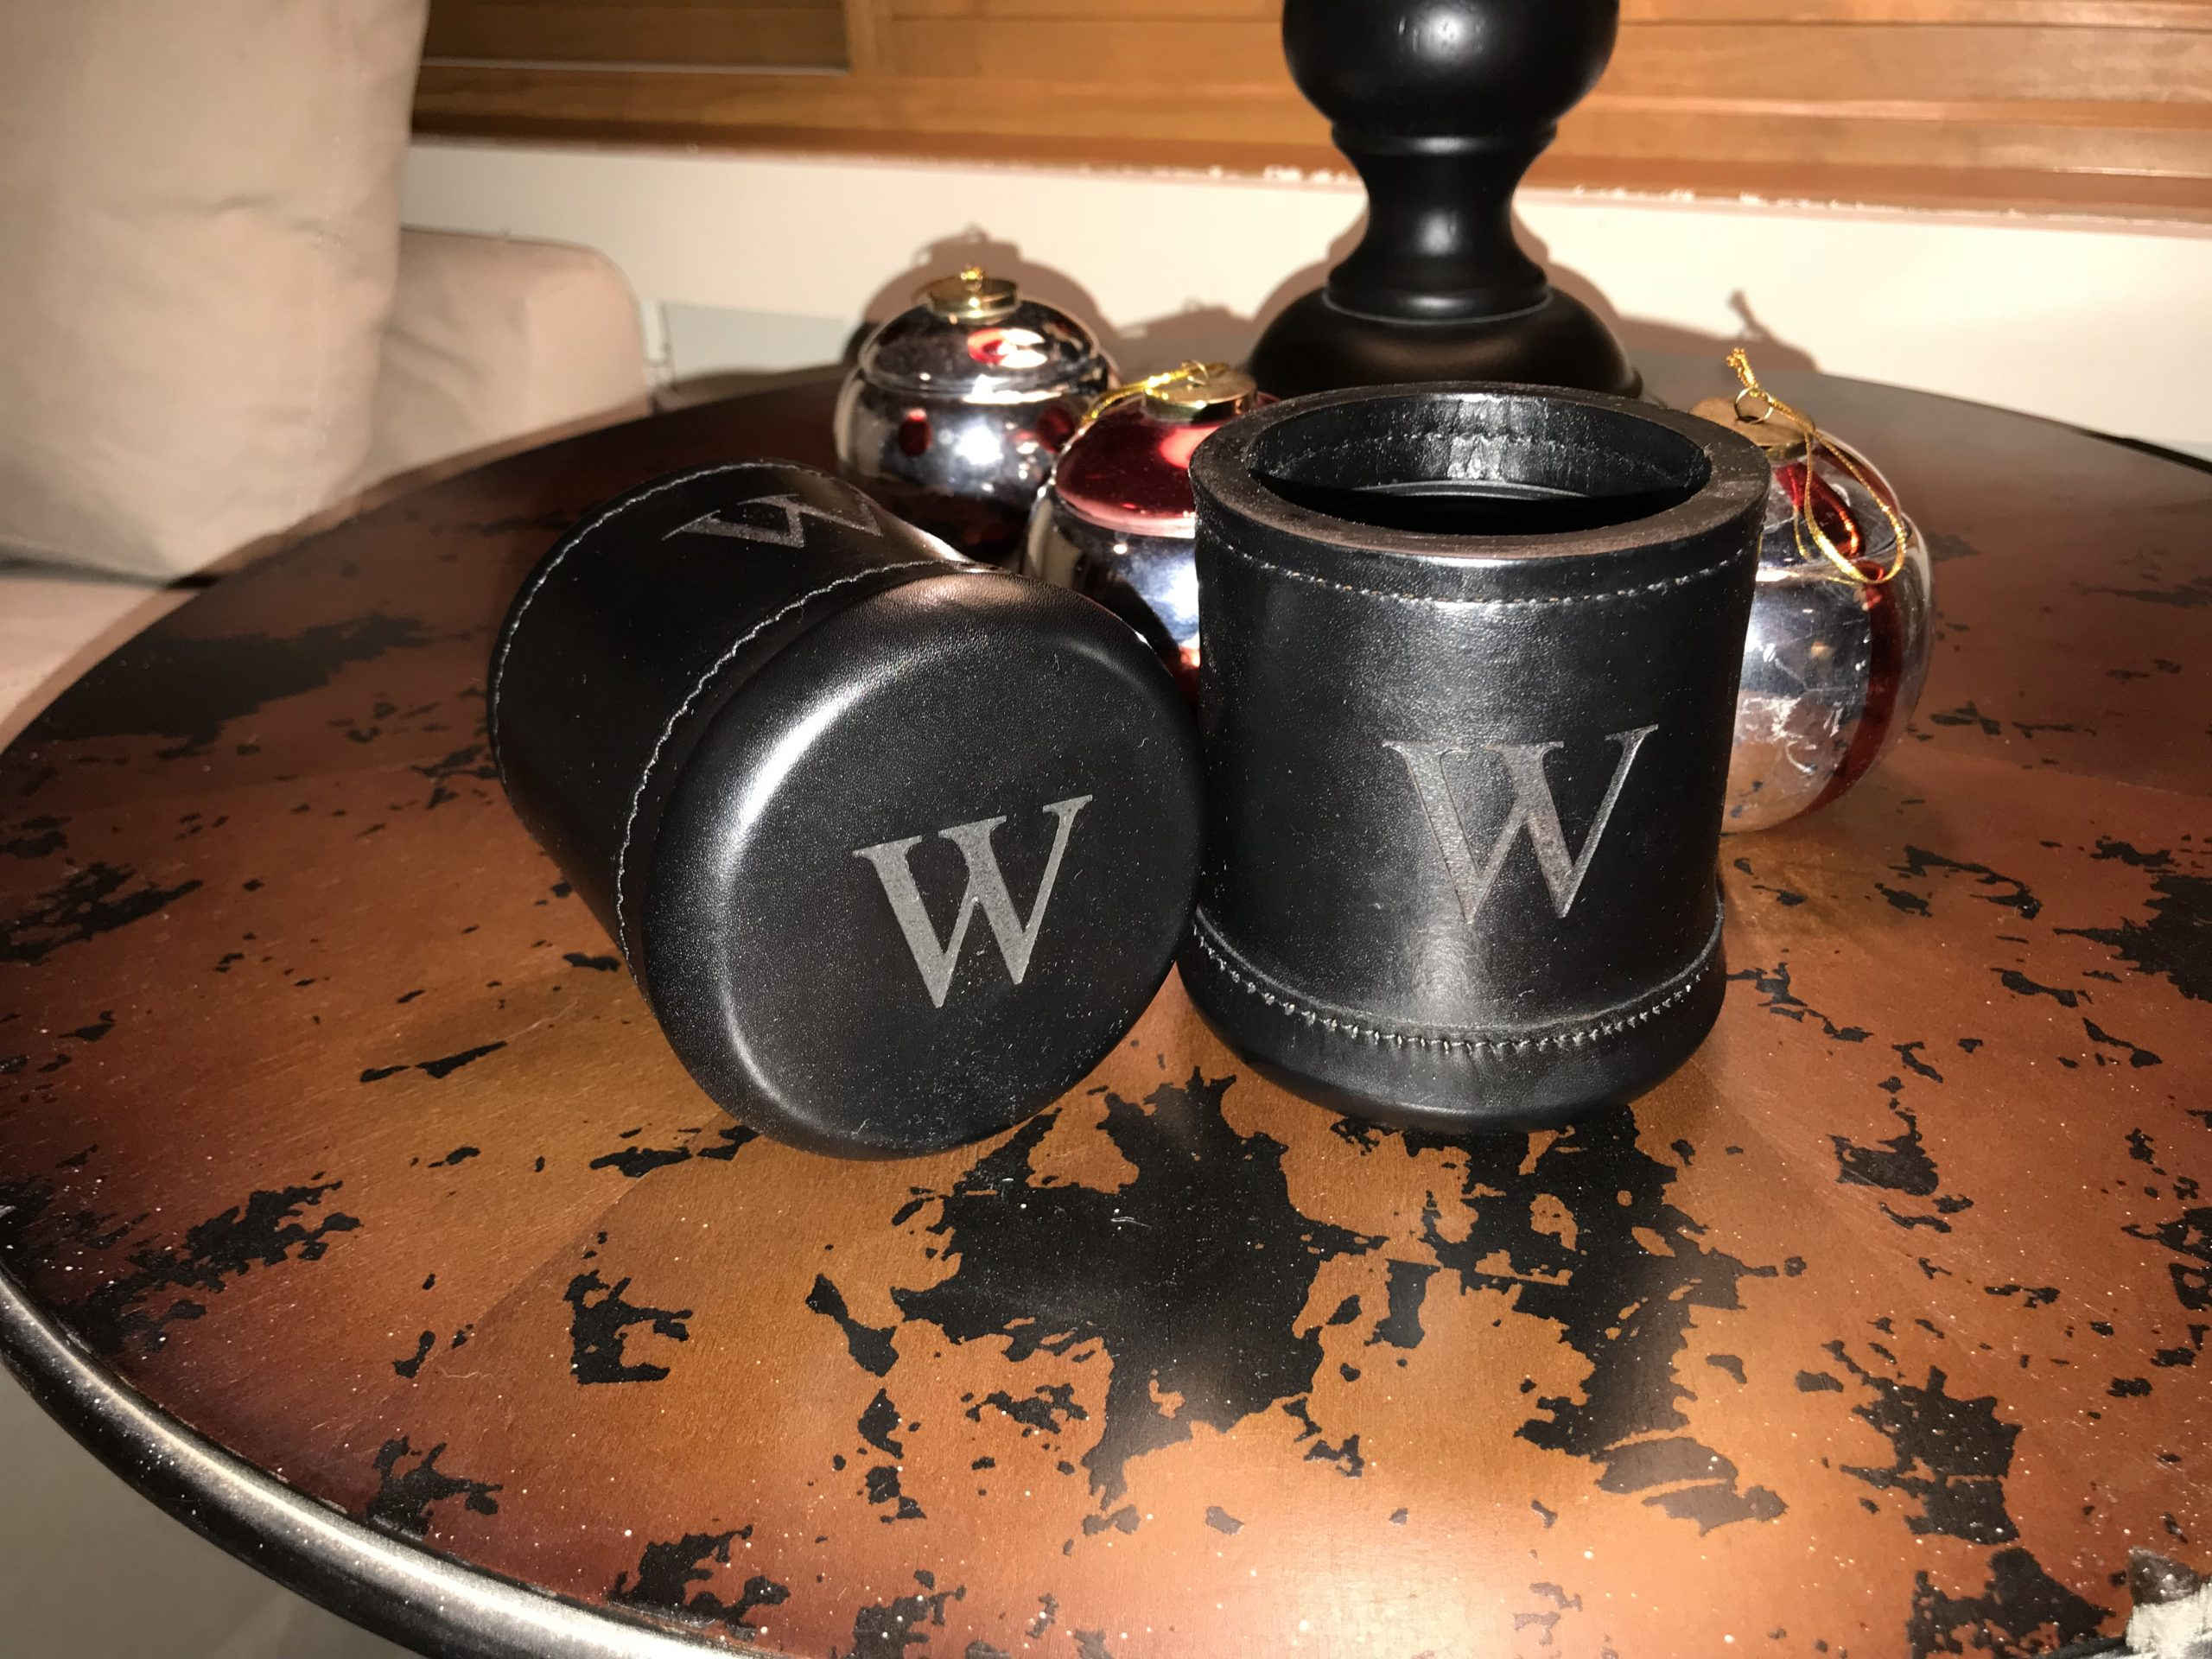 laser engraving of a W on leather cups